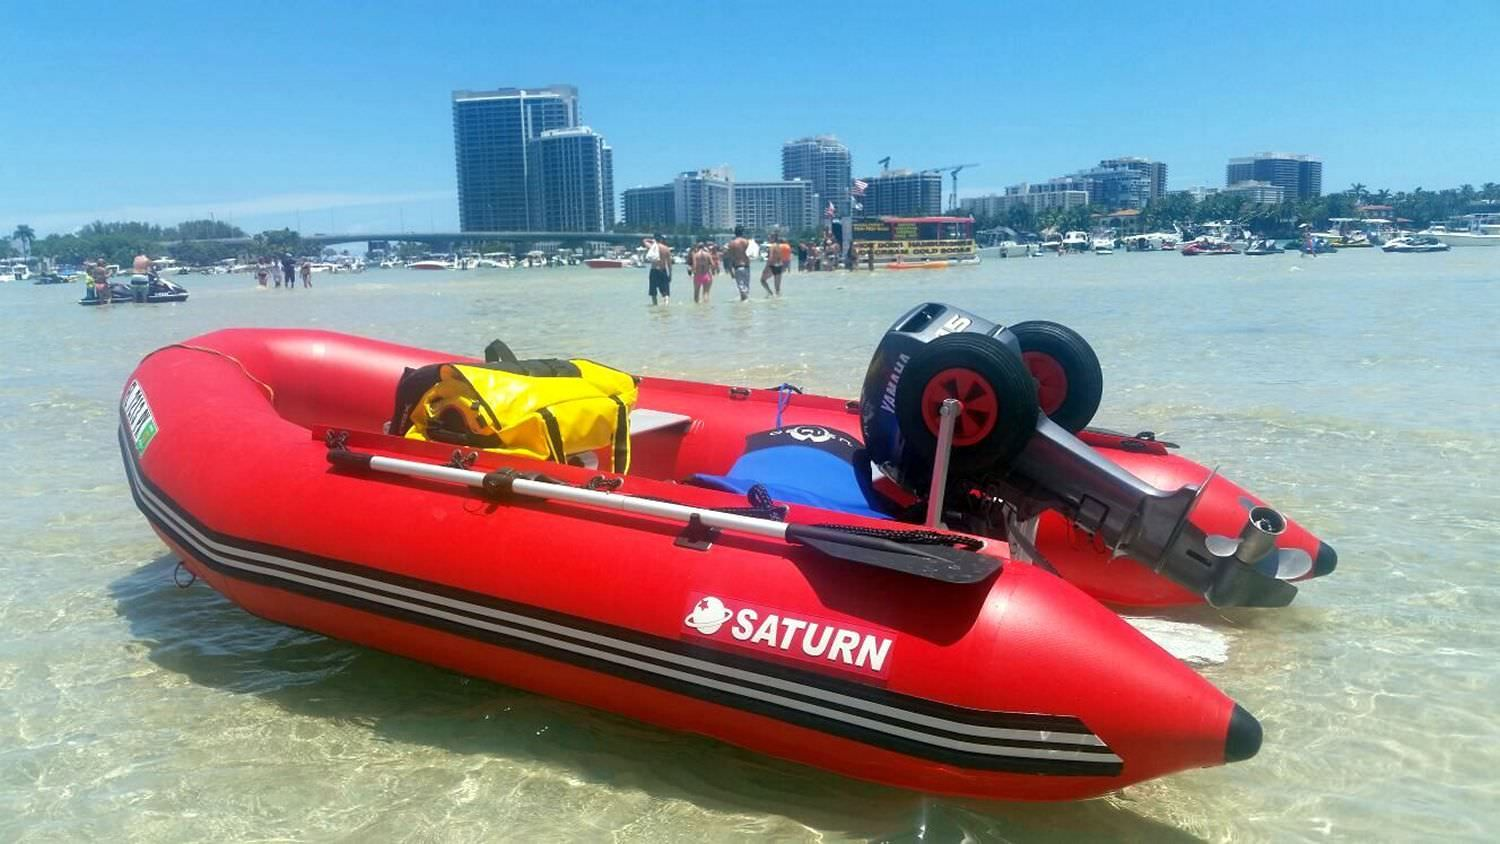 Saturn Inflatable Boats Inflatable Rafts And Inflatable Kayaks At Lowest Prices In Usa Inflatable Kayak Inflatable Rafts Boat